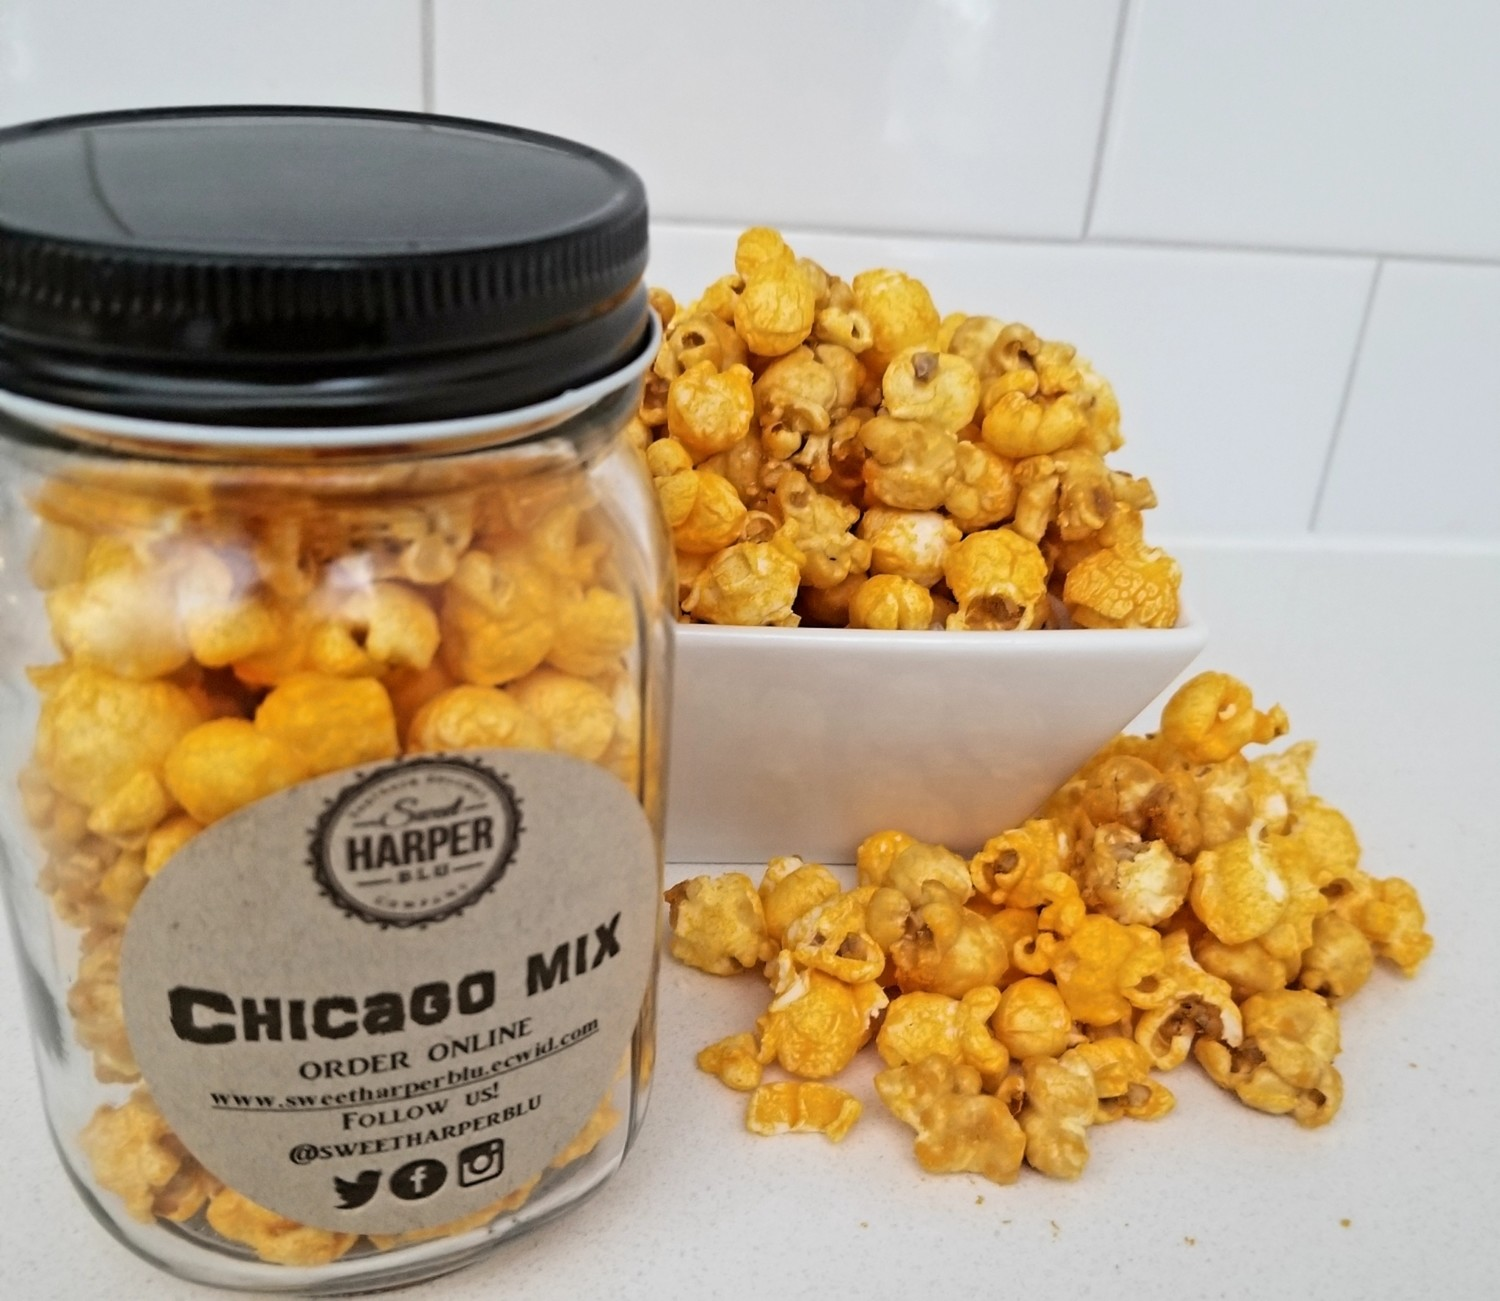 CHICAGO MIX (Southern Caramel and Cheddar Cheese)